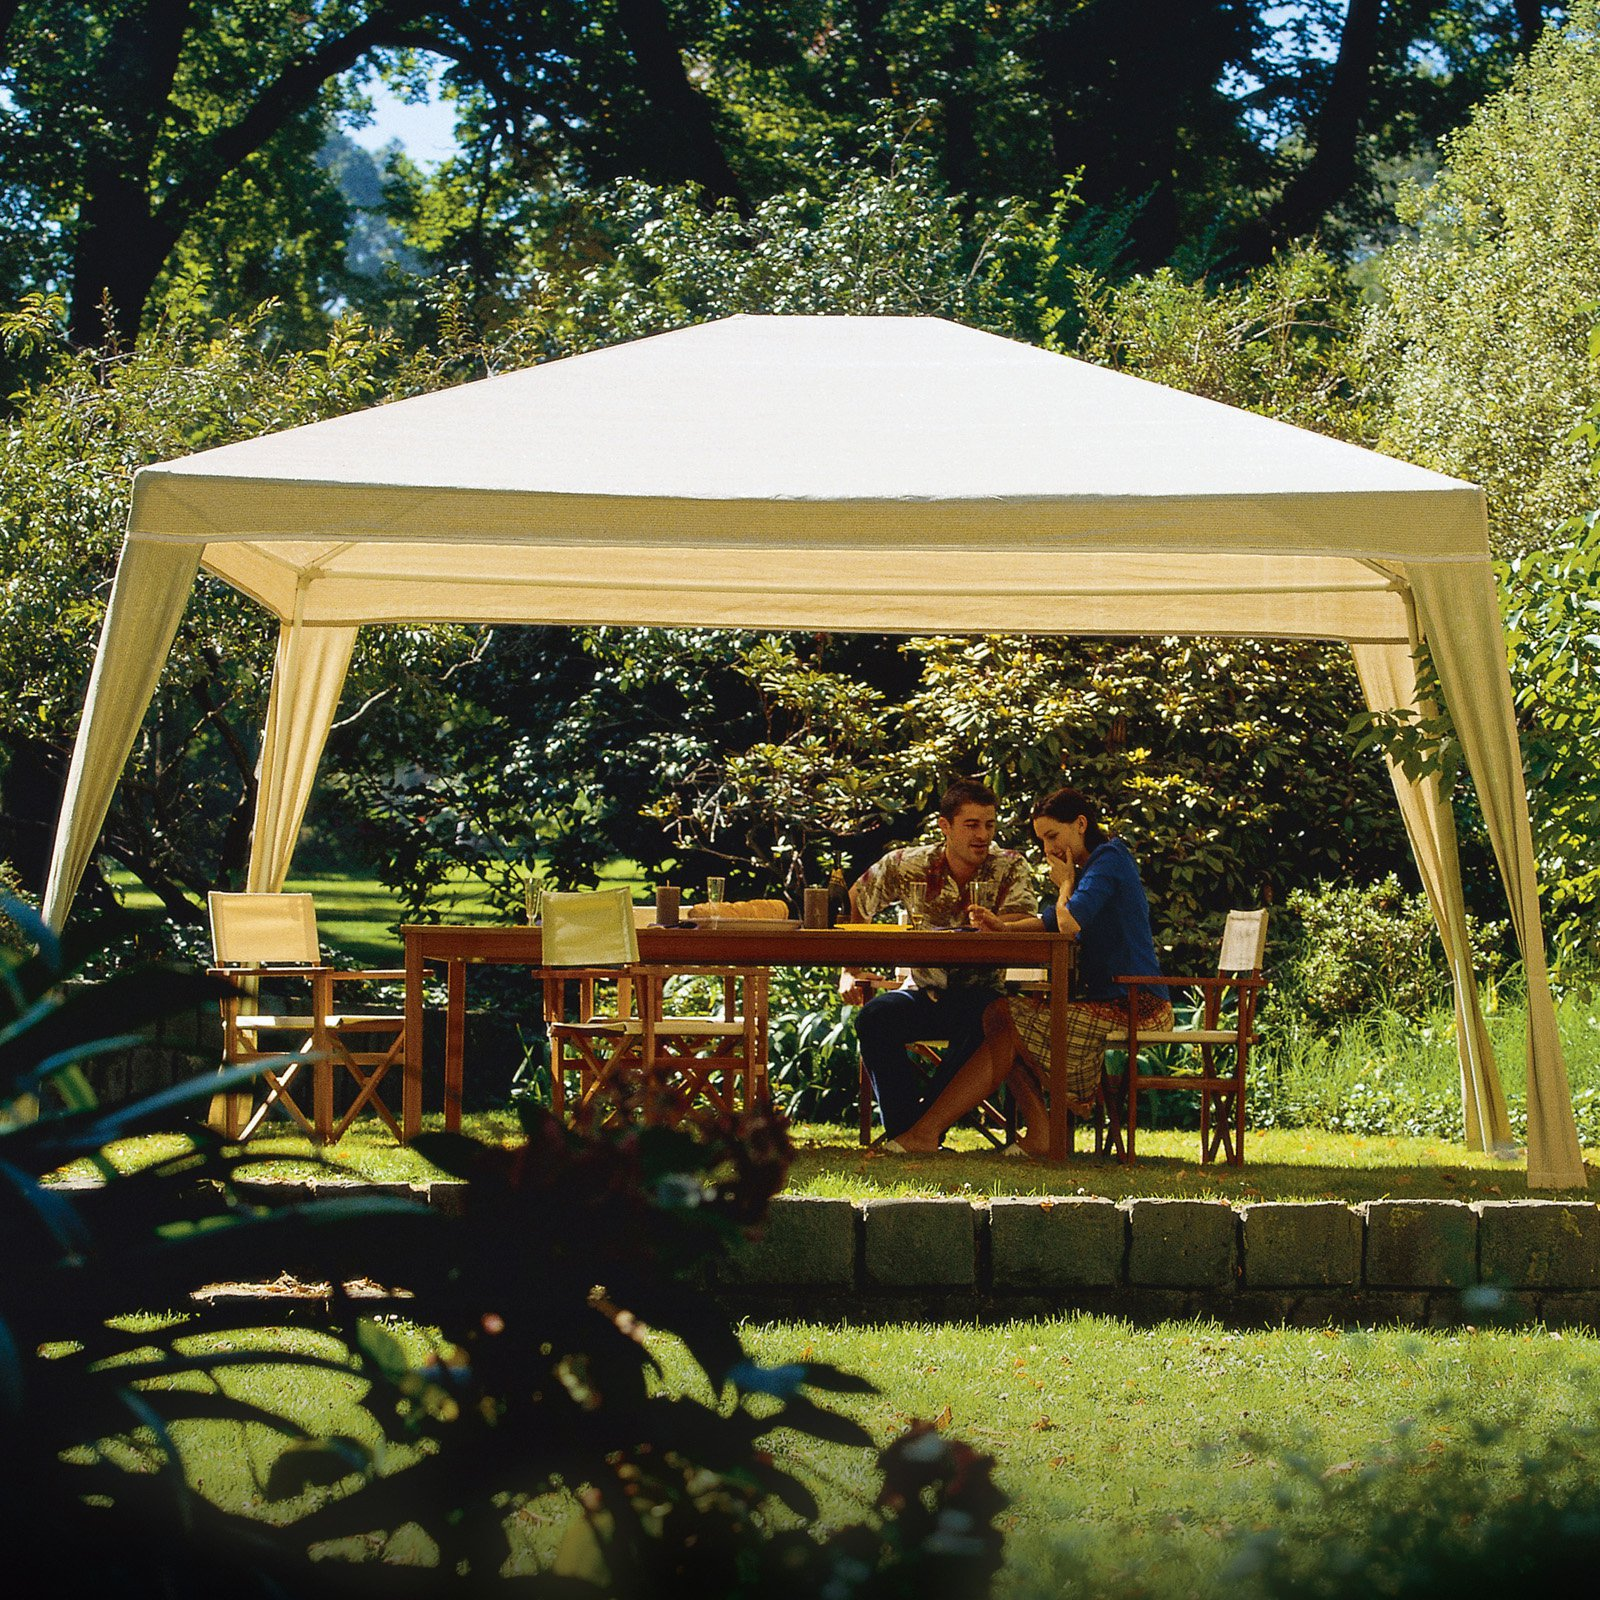 Coolaroo Rectangle Isabella Gazebo, 12' x 10', Camel by Gale Pacific USA, Inc.